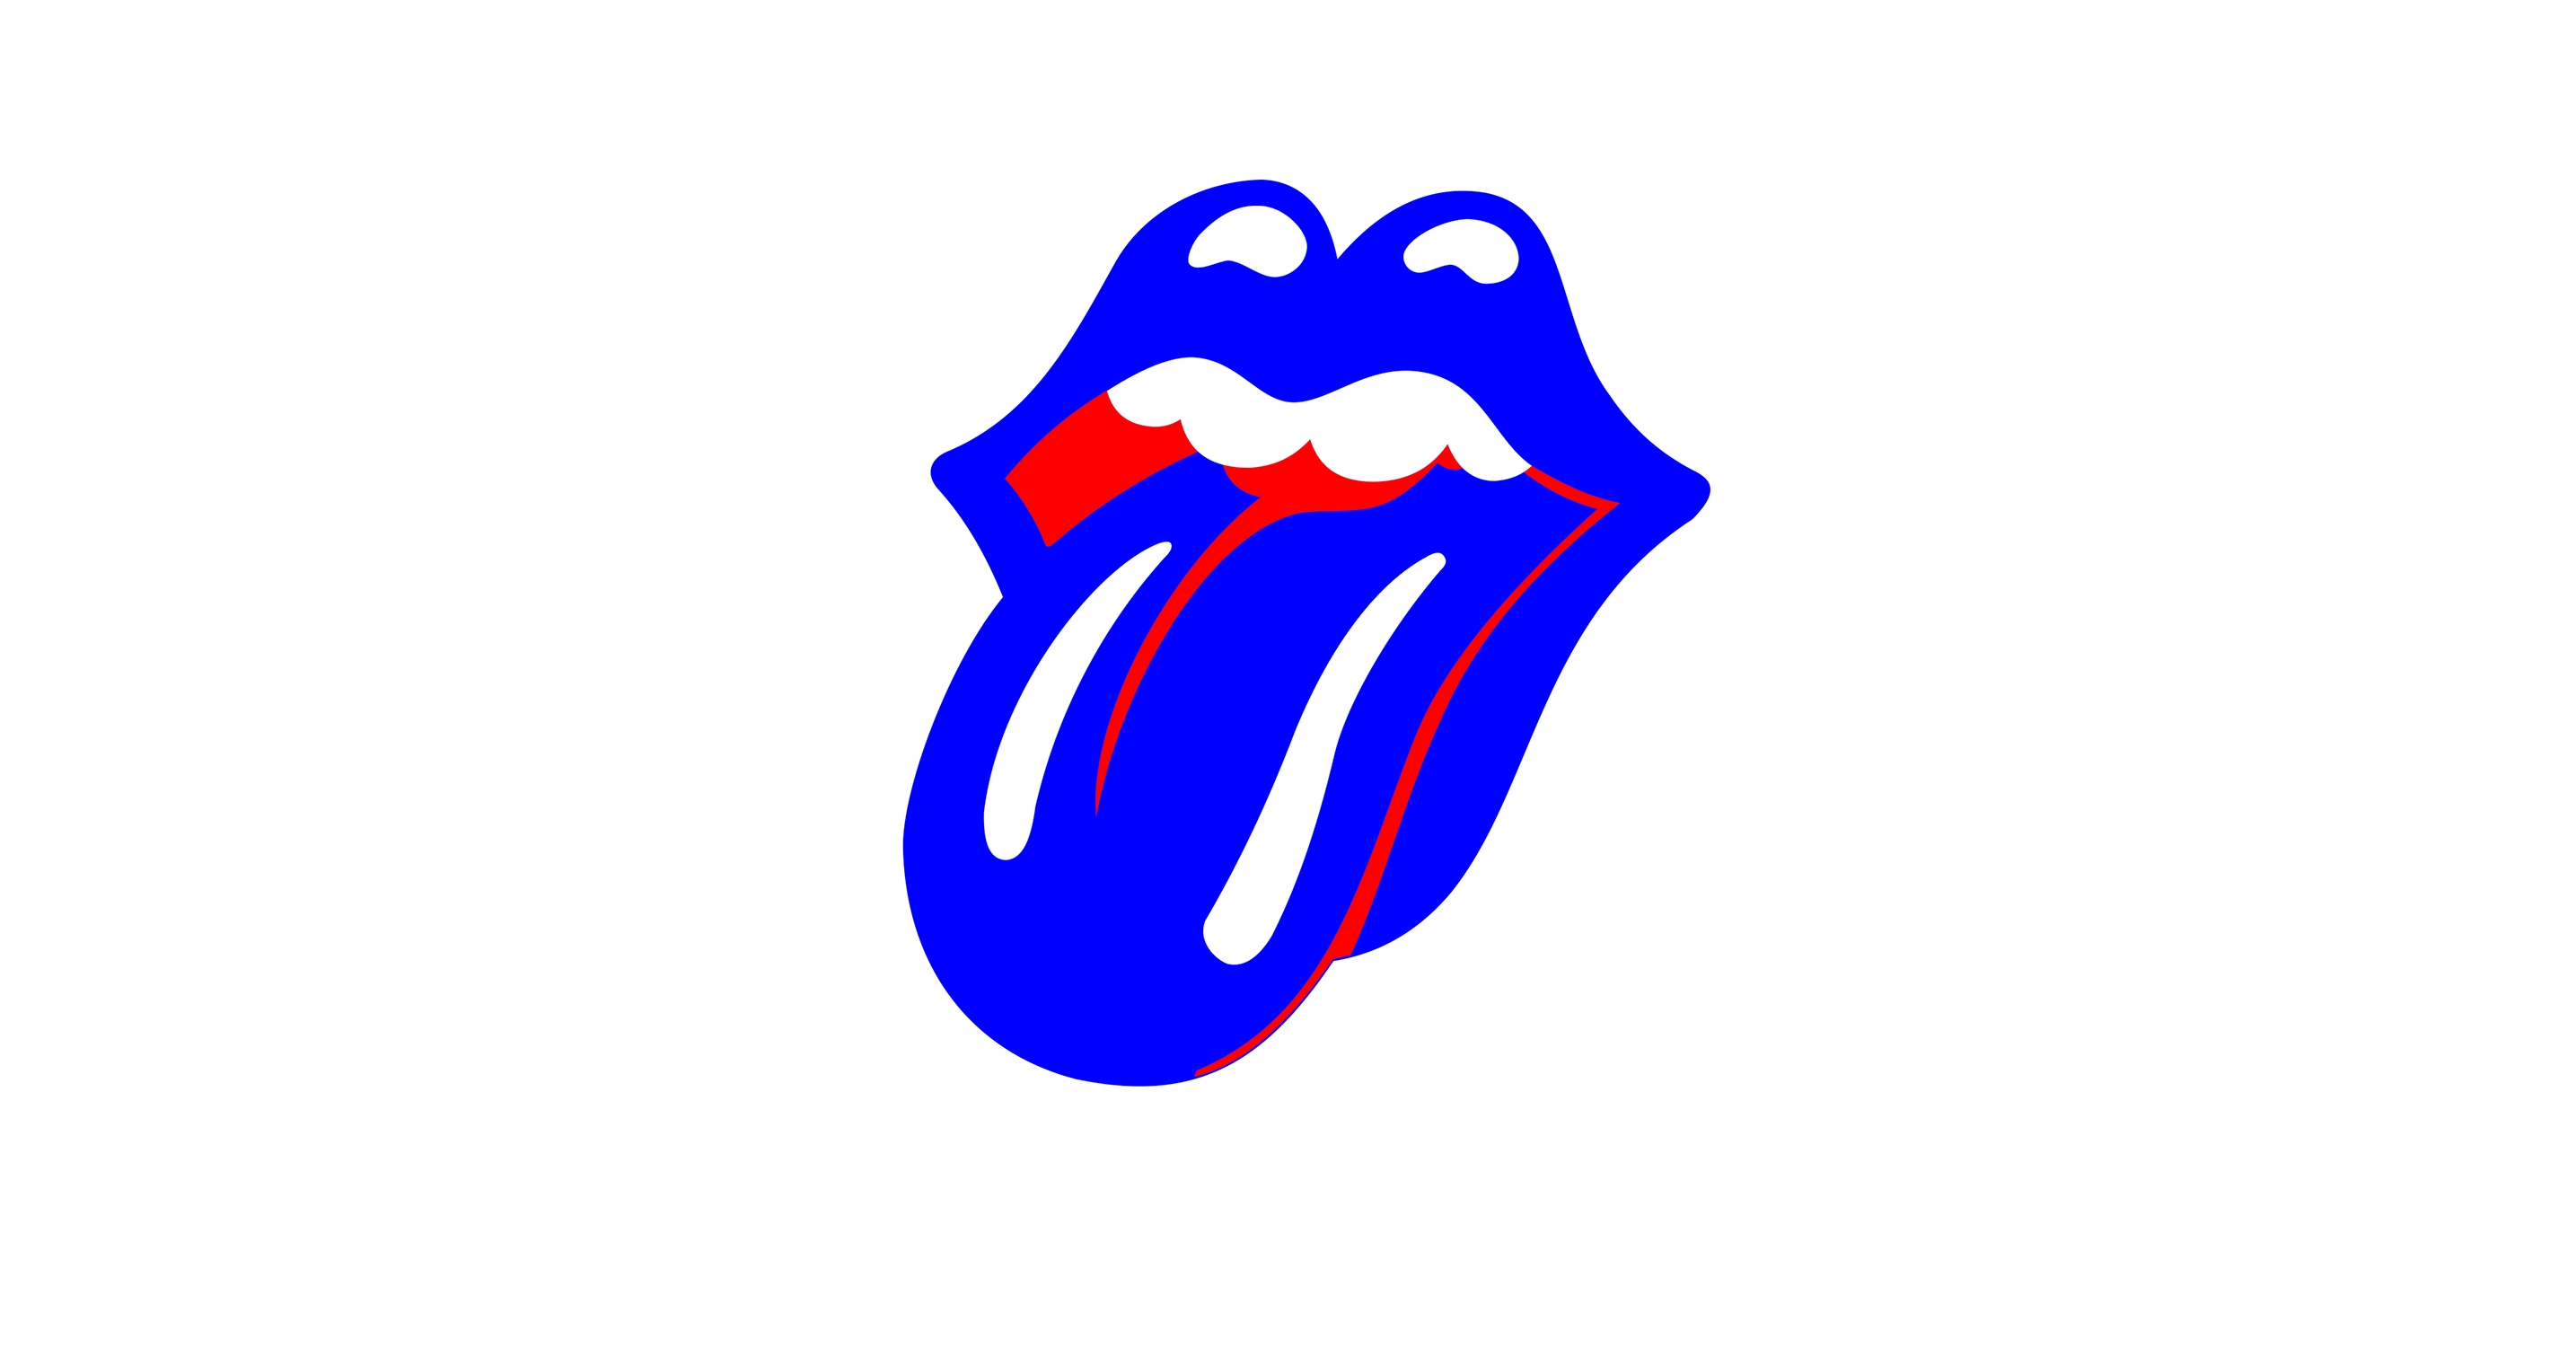 Celebrity clipart rolling stones Upcoming Shows Tickets More Rolling